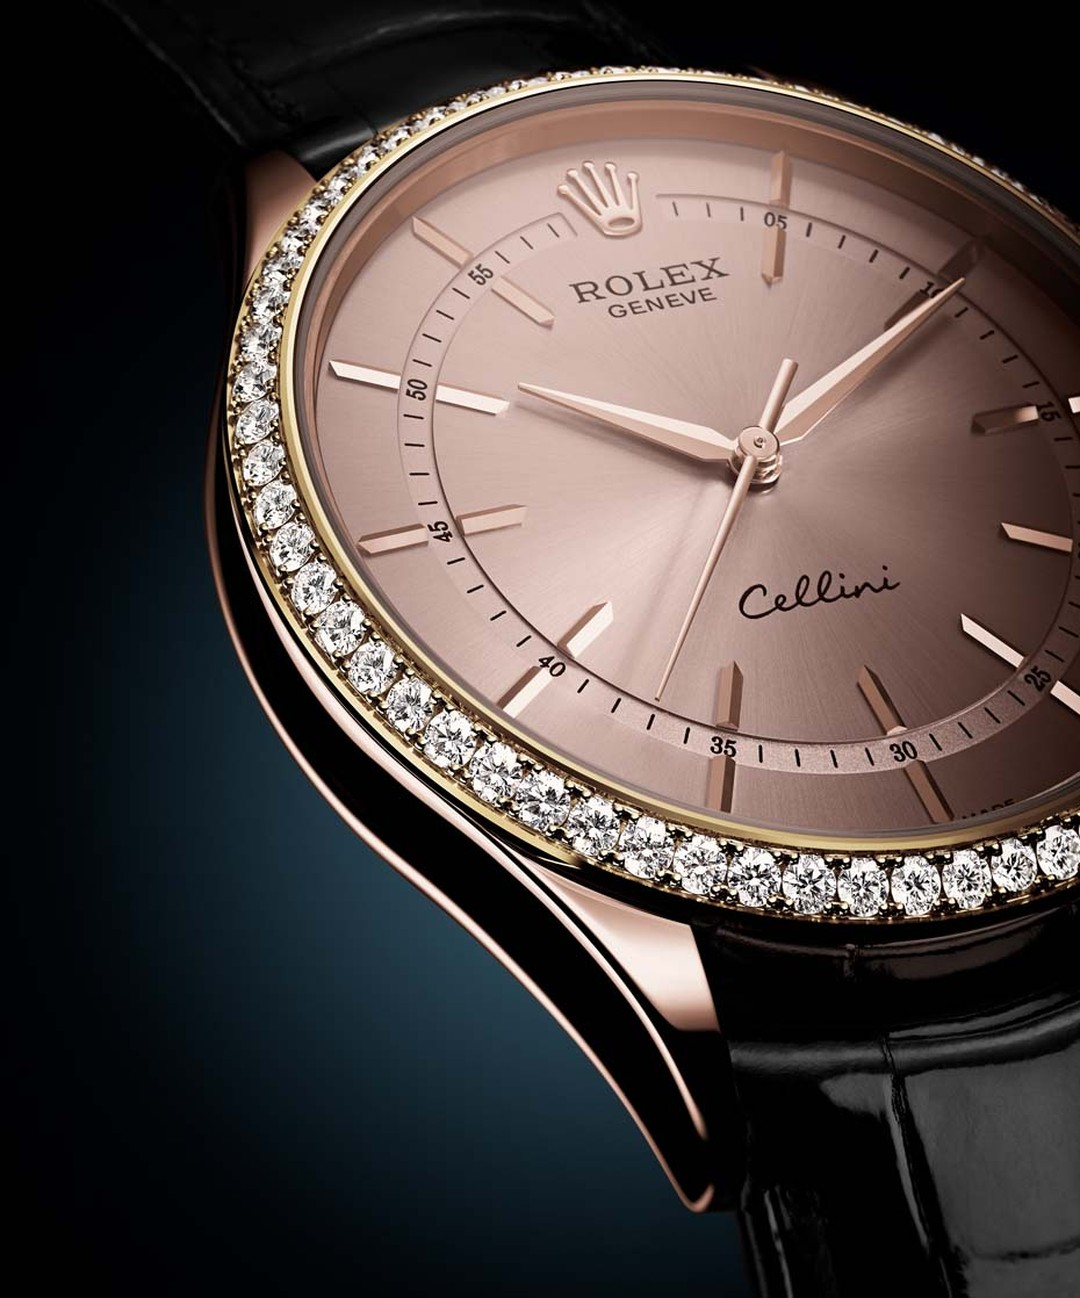 Rolex_Cellini Timeless collection_Rose gold case and dial diamonds black alligator strap.jpg